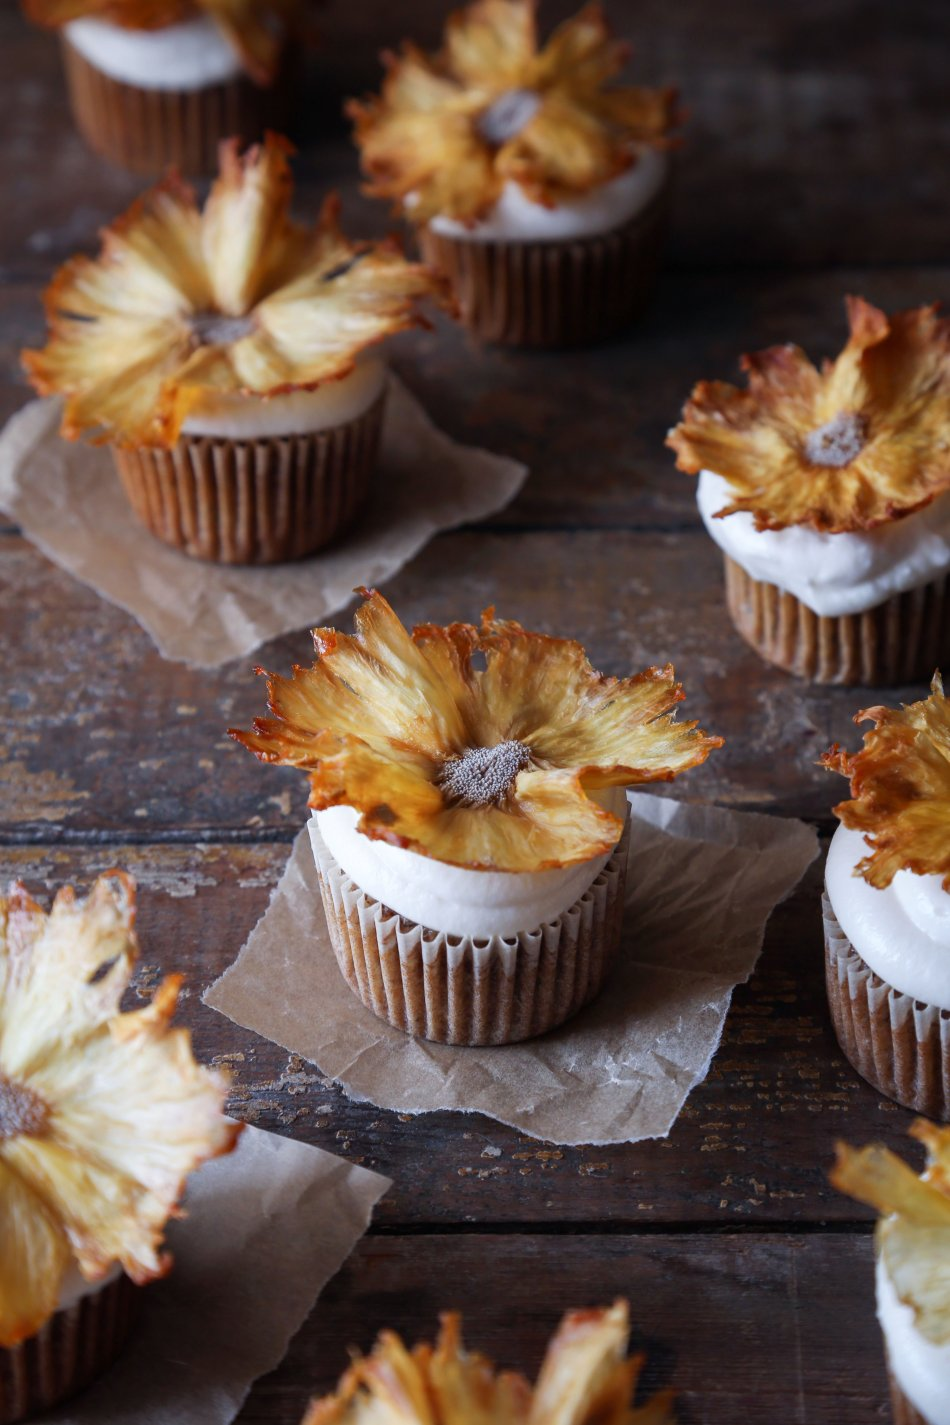 Naturally Sweetened Hummingbird Cupcakes | Free of Gluten, Dairy, and Refined Sugar.